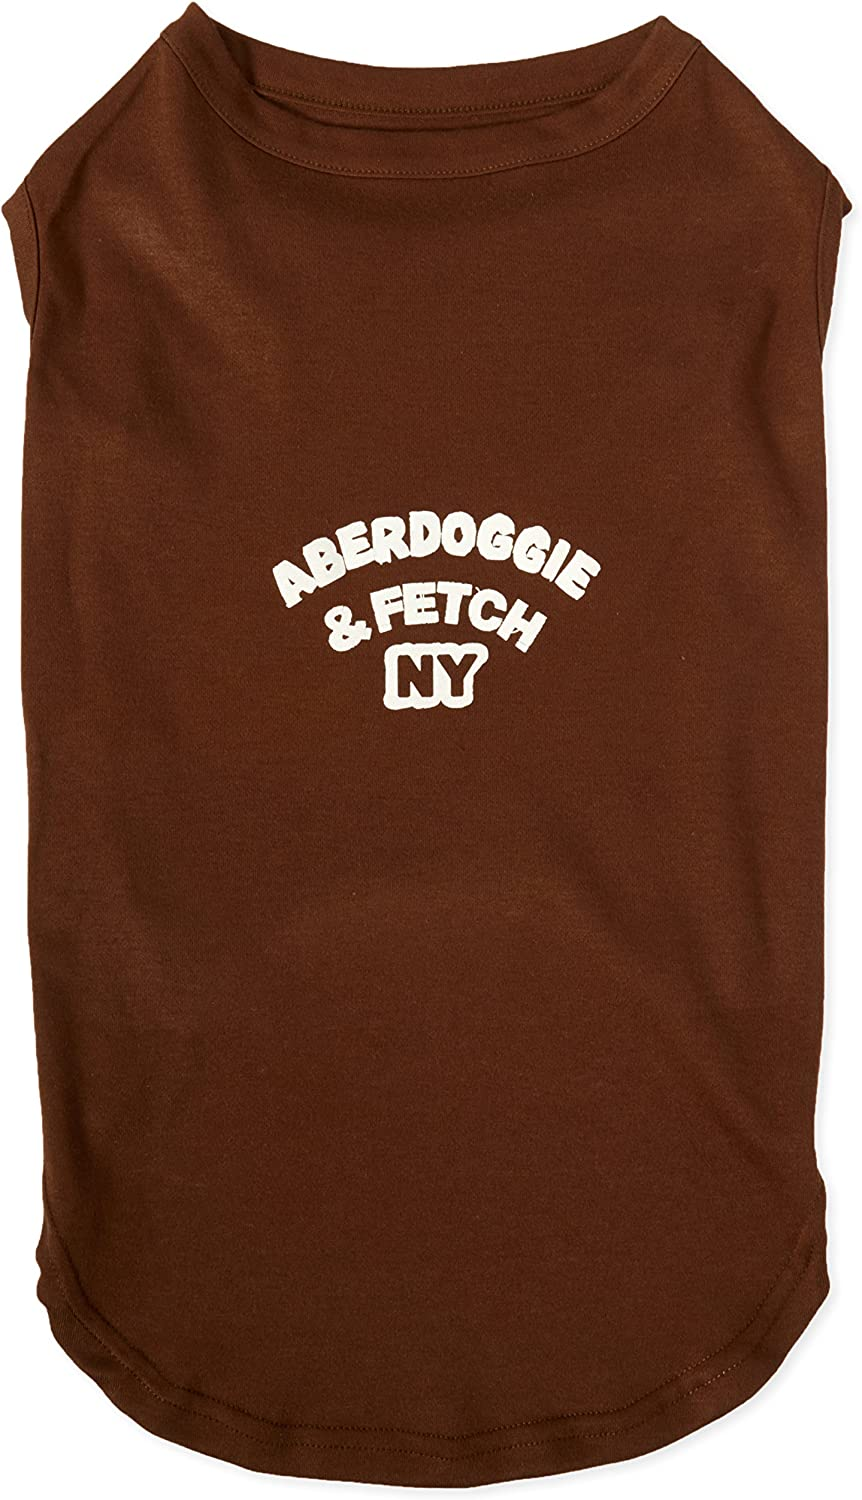 Mirage Pet Products 20Inch Aberdoggie New York Screenprint Shirts, 3XLarge, Brown